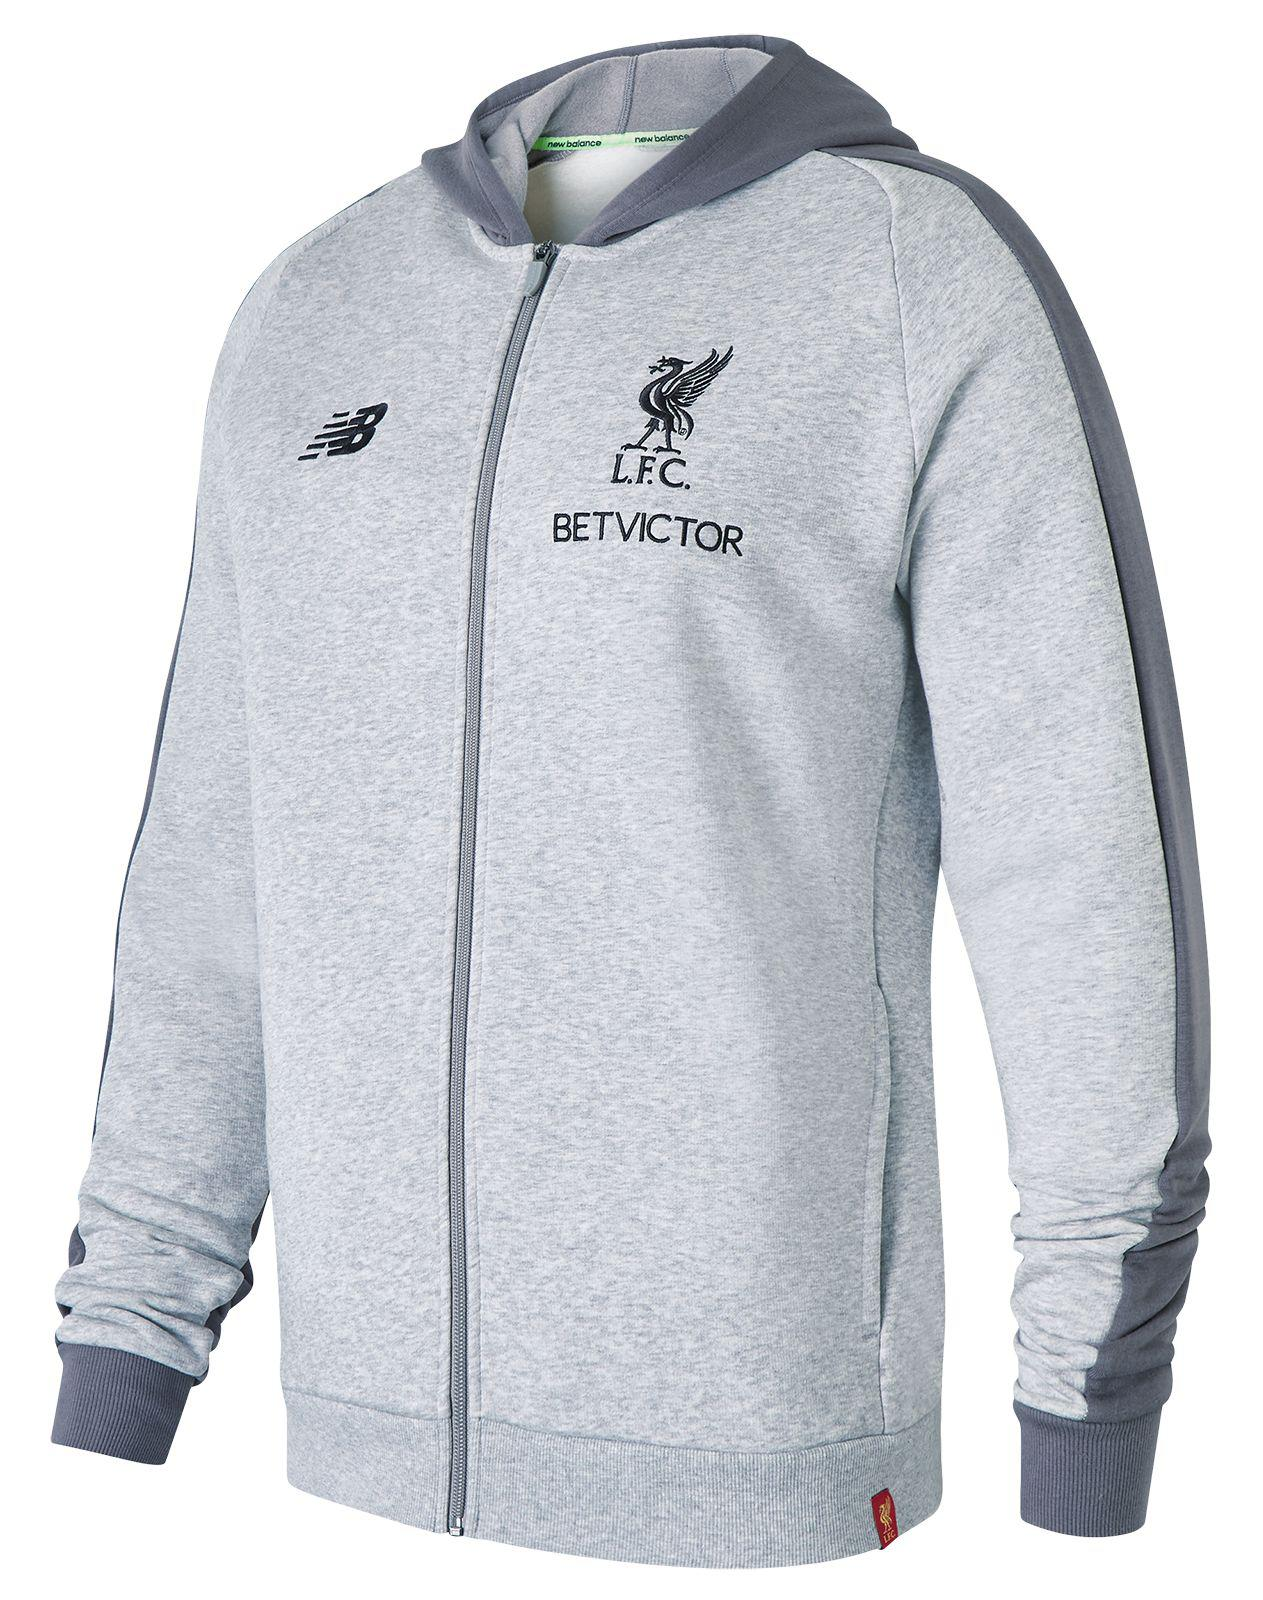 Lyst - New Balance Liverpool Fc Elite Leisure Hoodie in Gray for Men c0b1c0d86